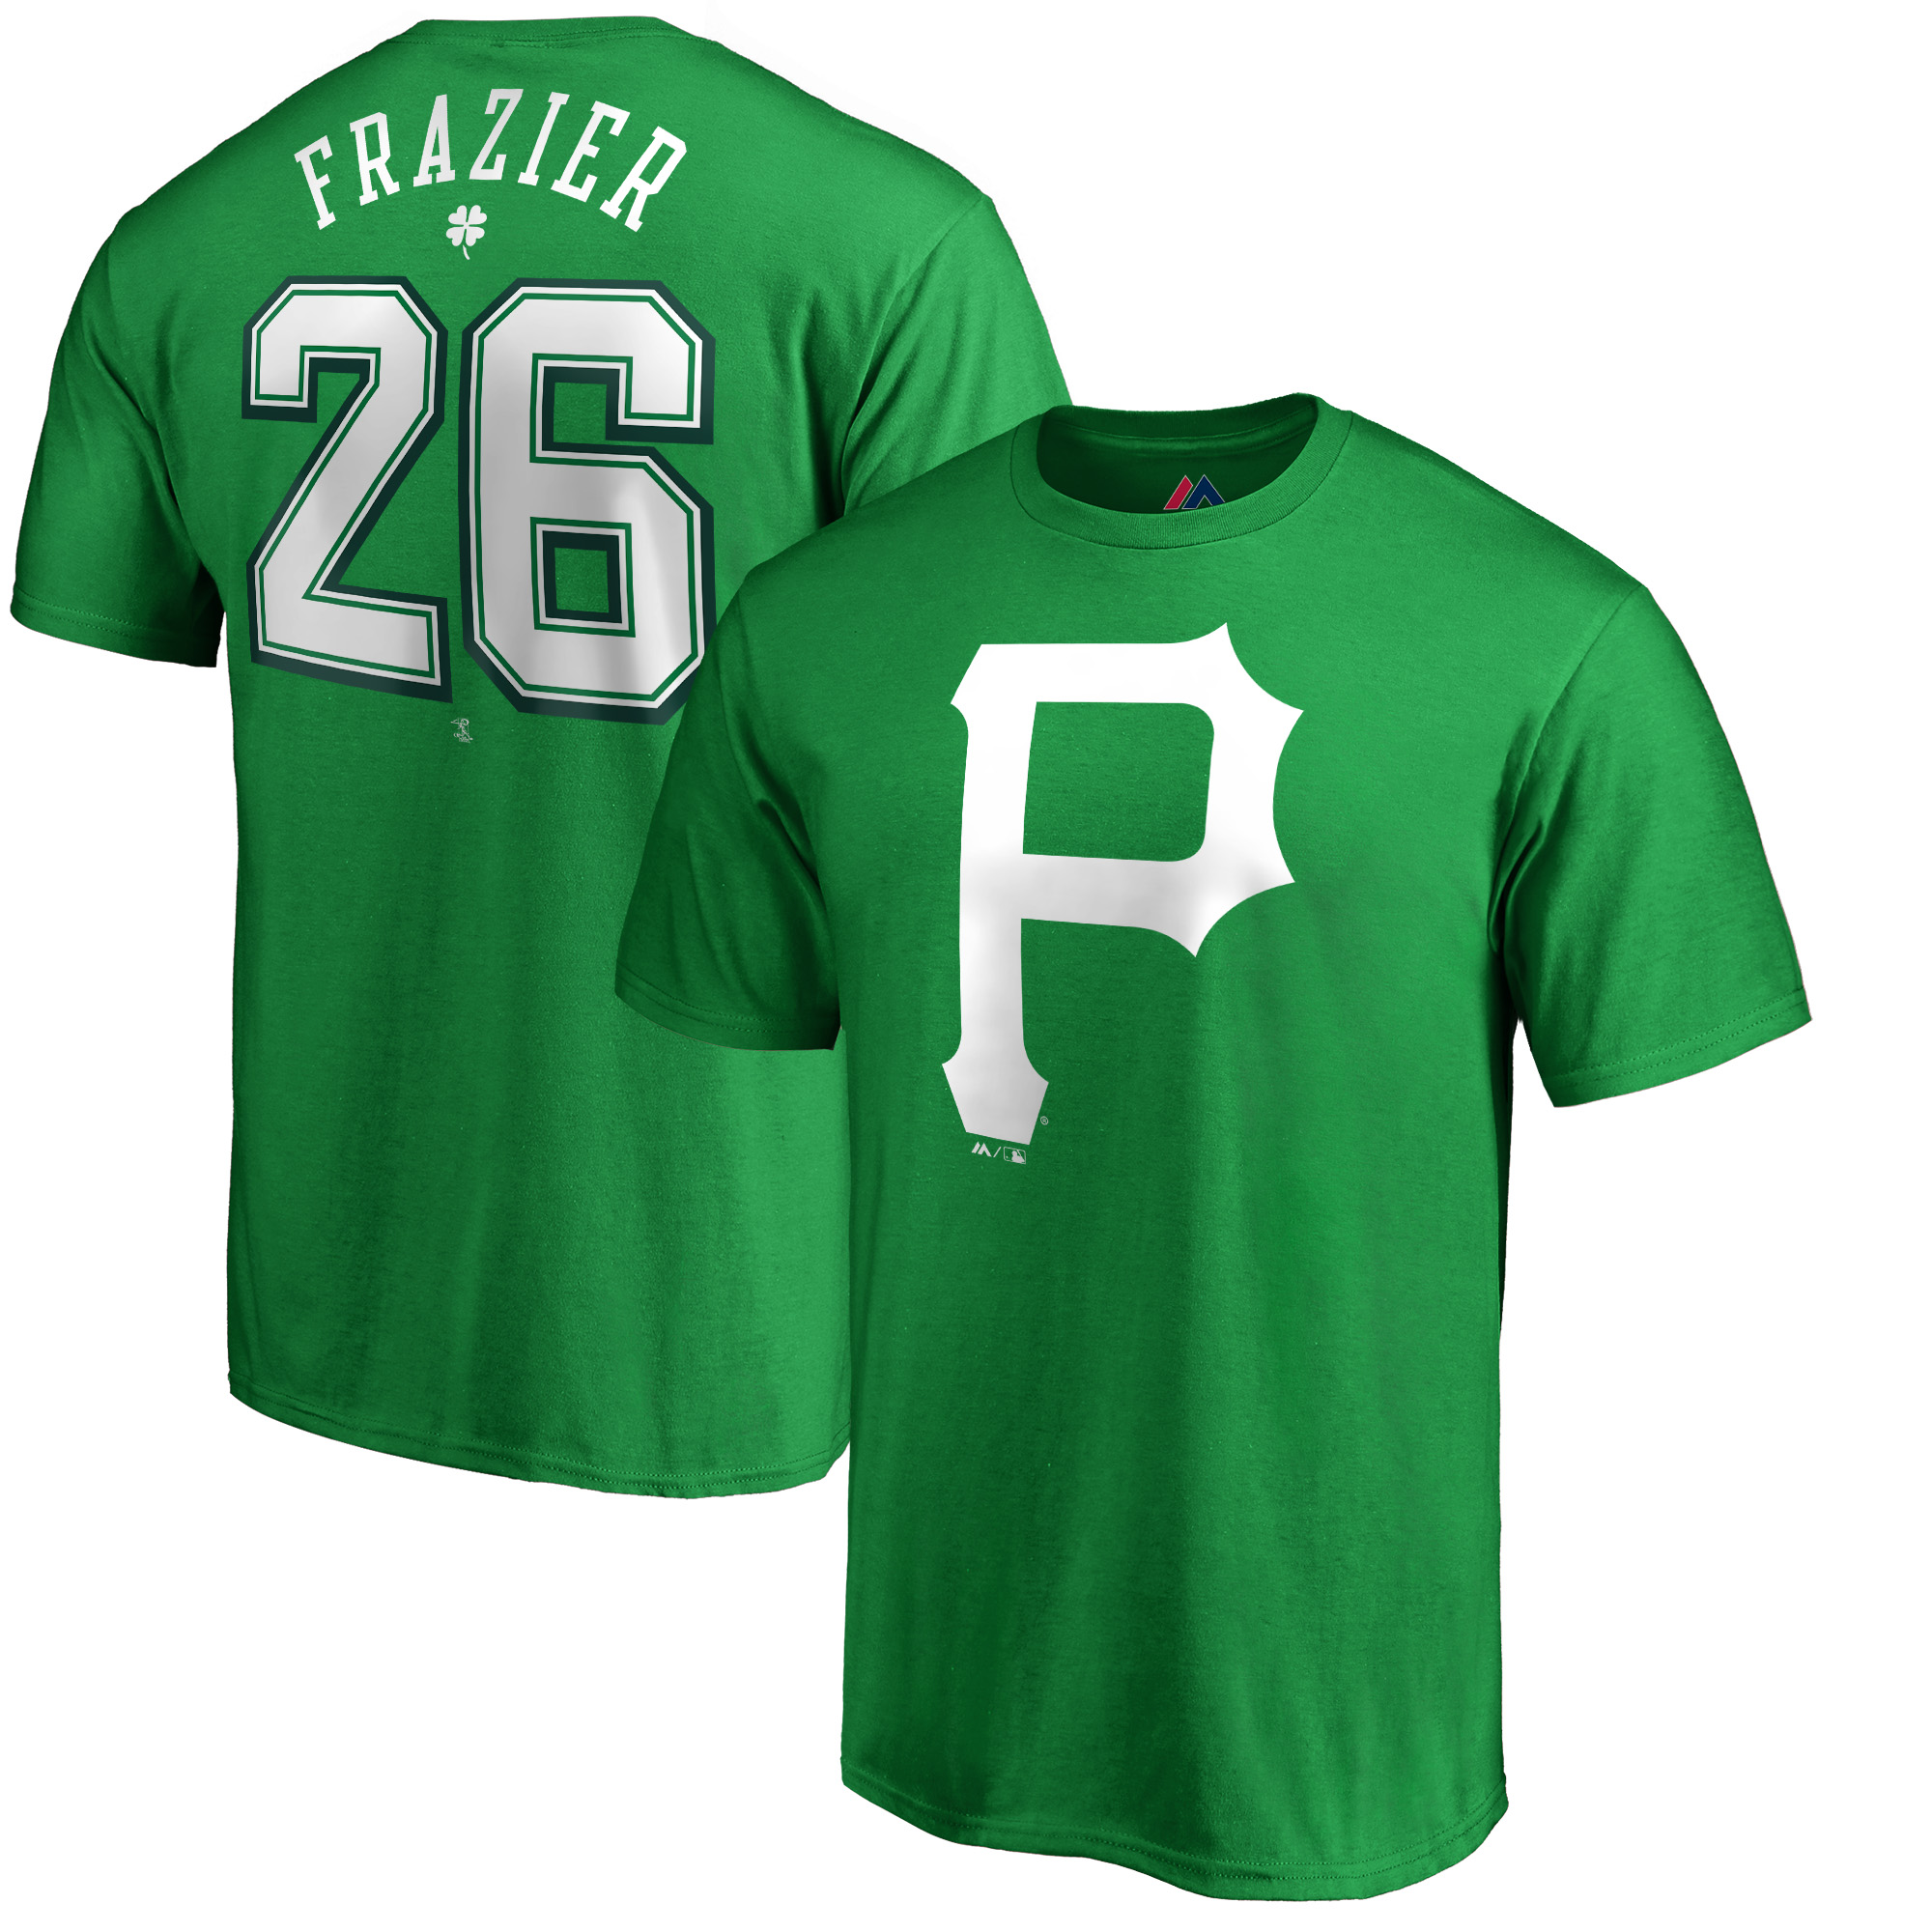 Adam Frazier Pittsburgh Pirates Majestic St. Patrick's Day Name & Number T-Shirt - Kelly Green